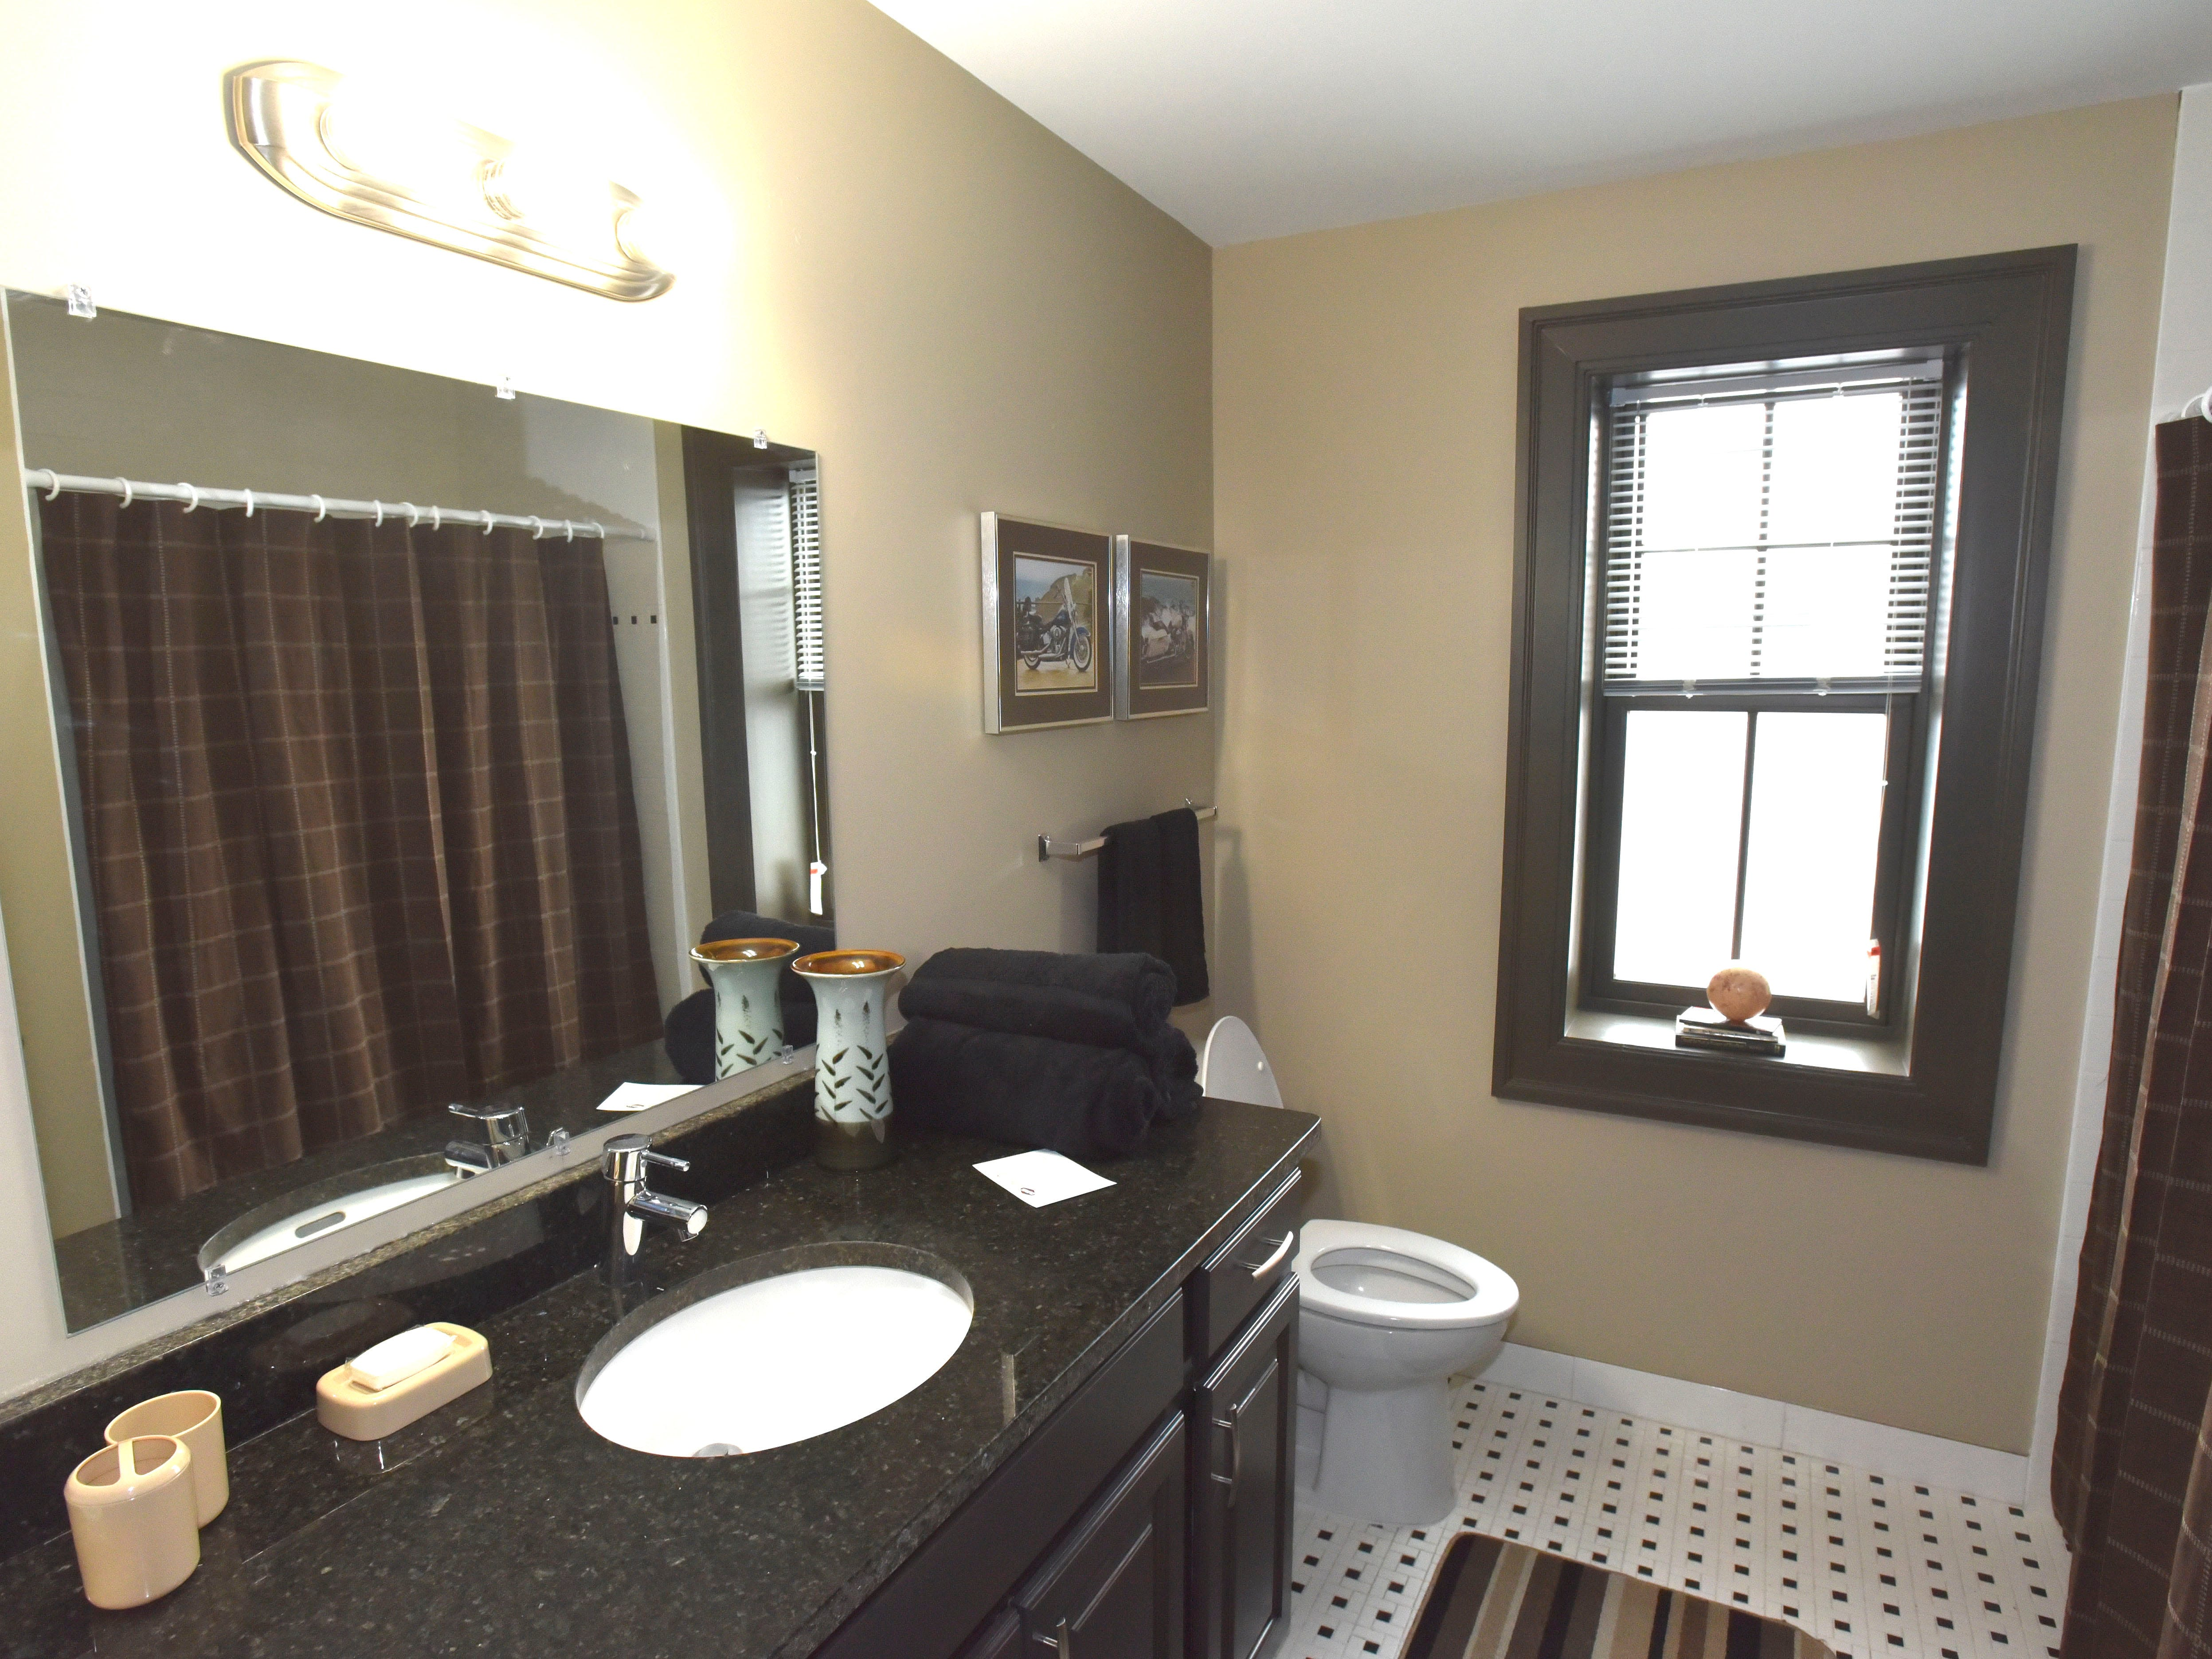 This is a finished bathroom.